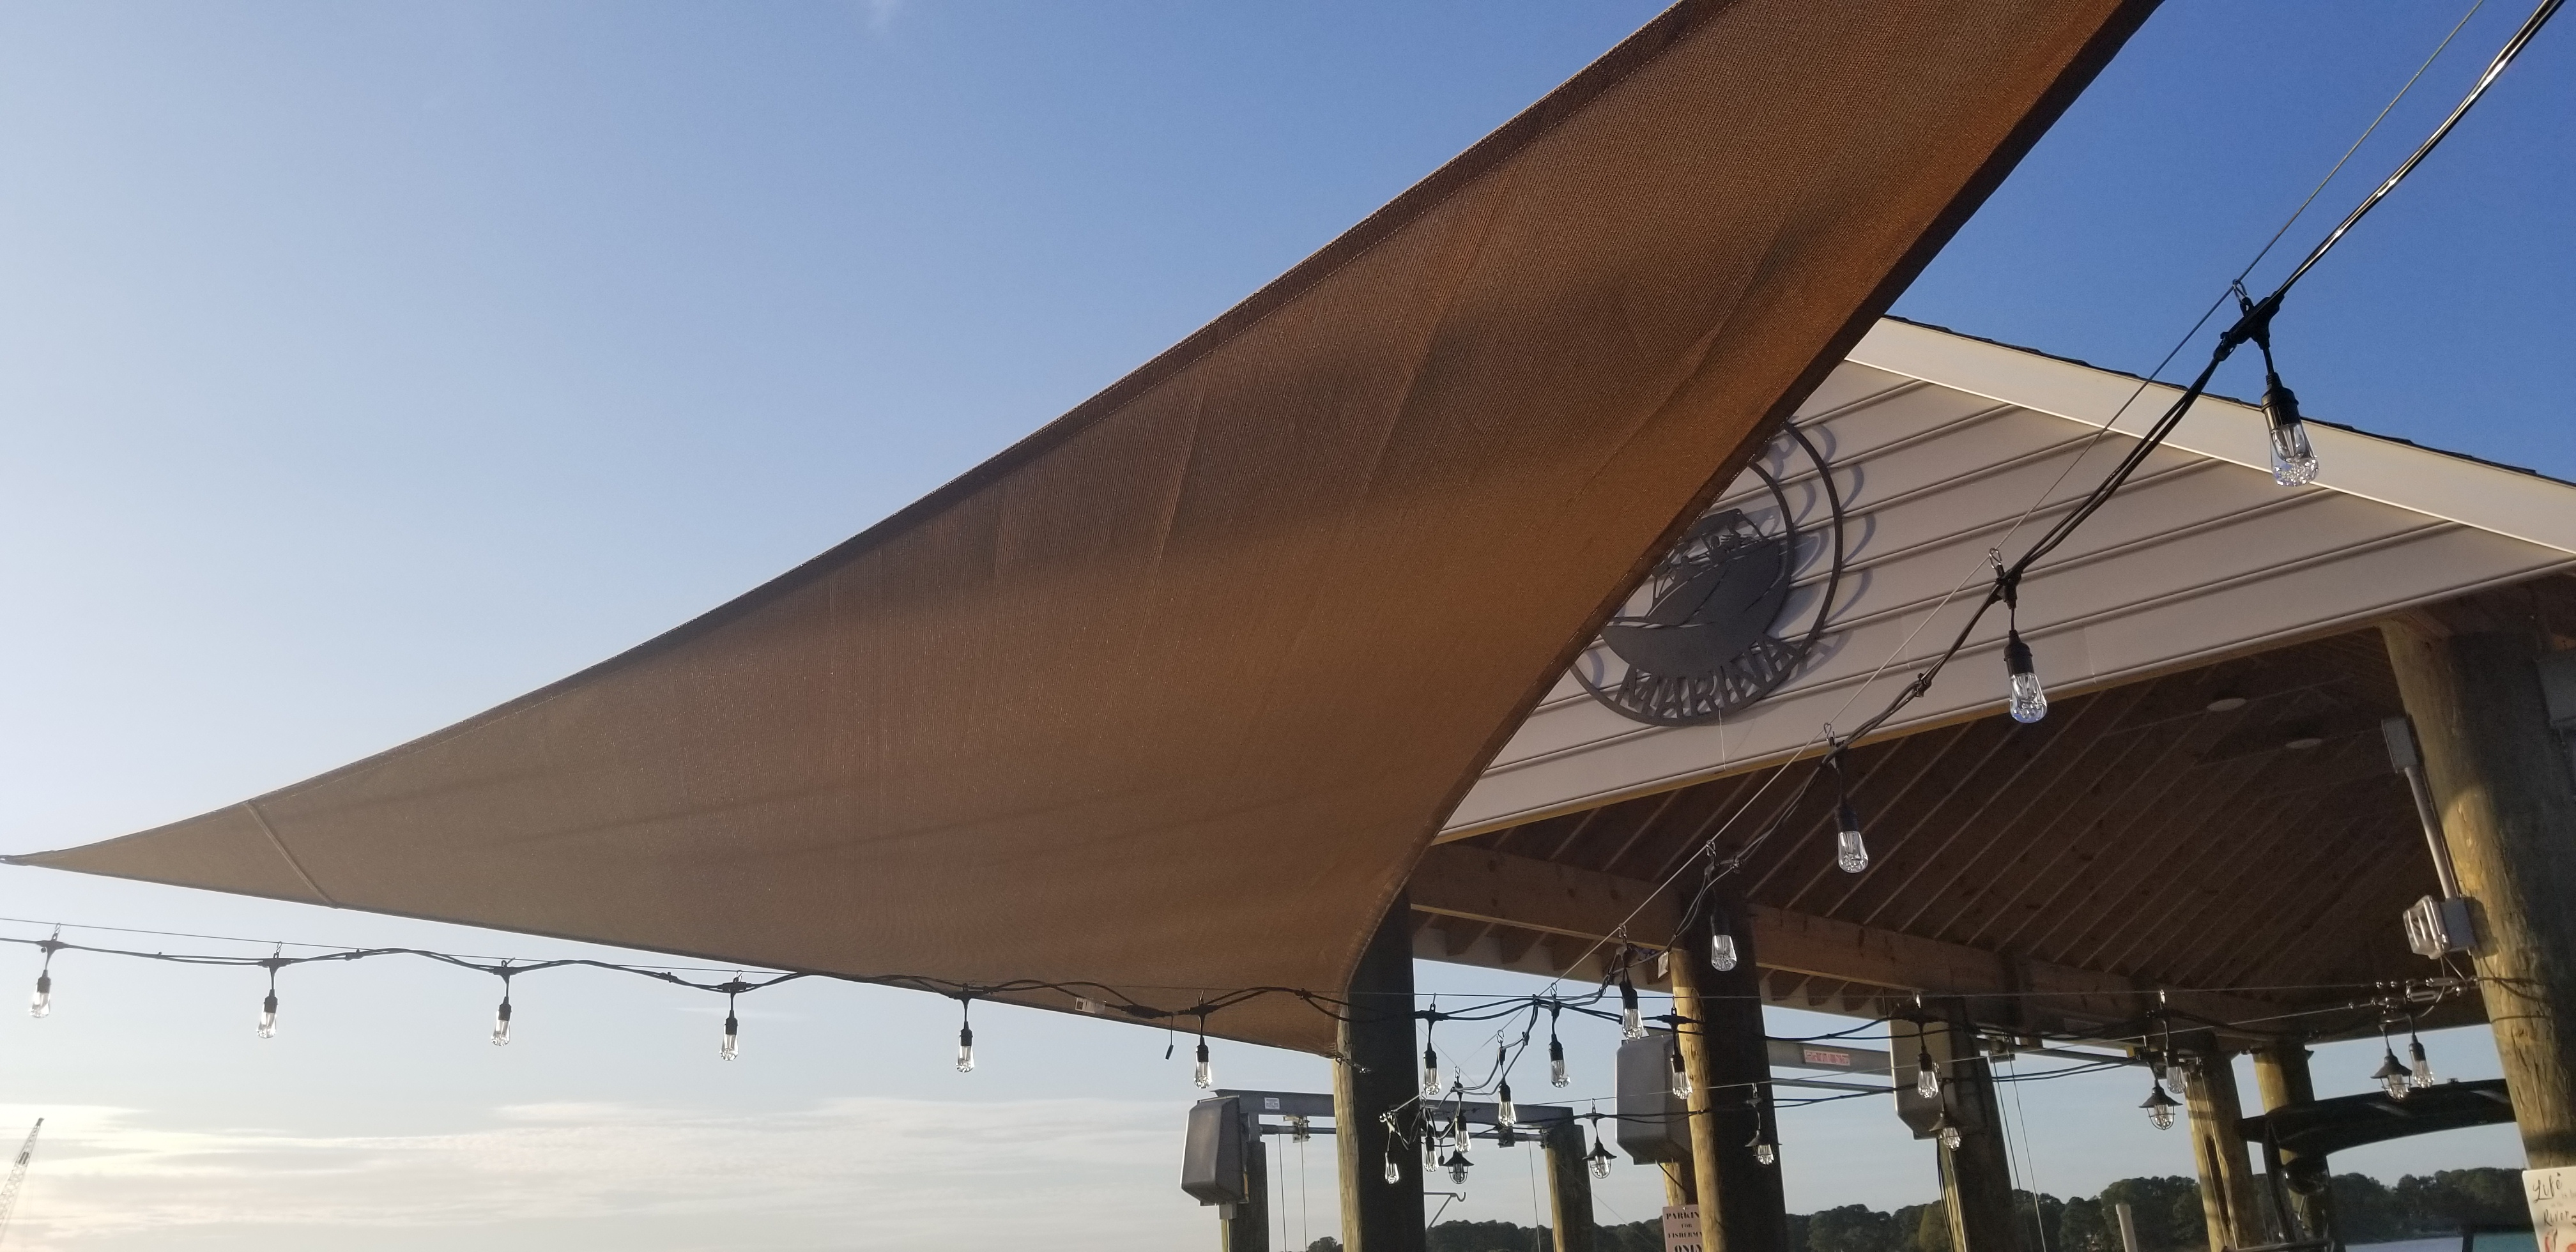 Sail shade World shade sail in Virginia, United States